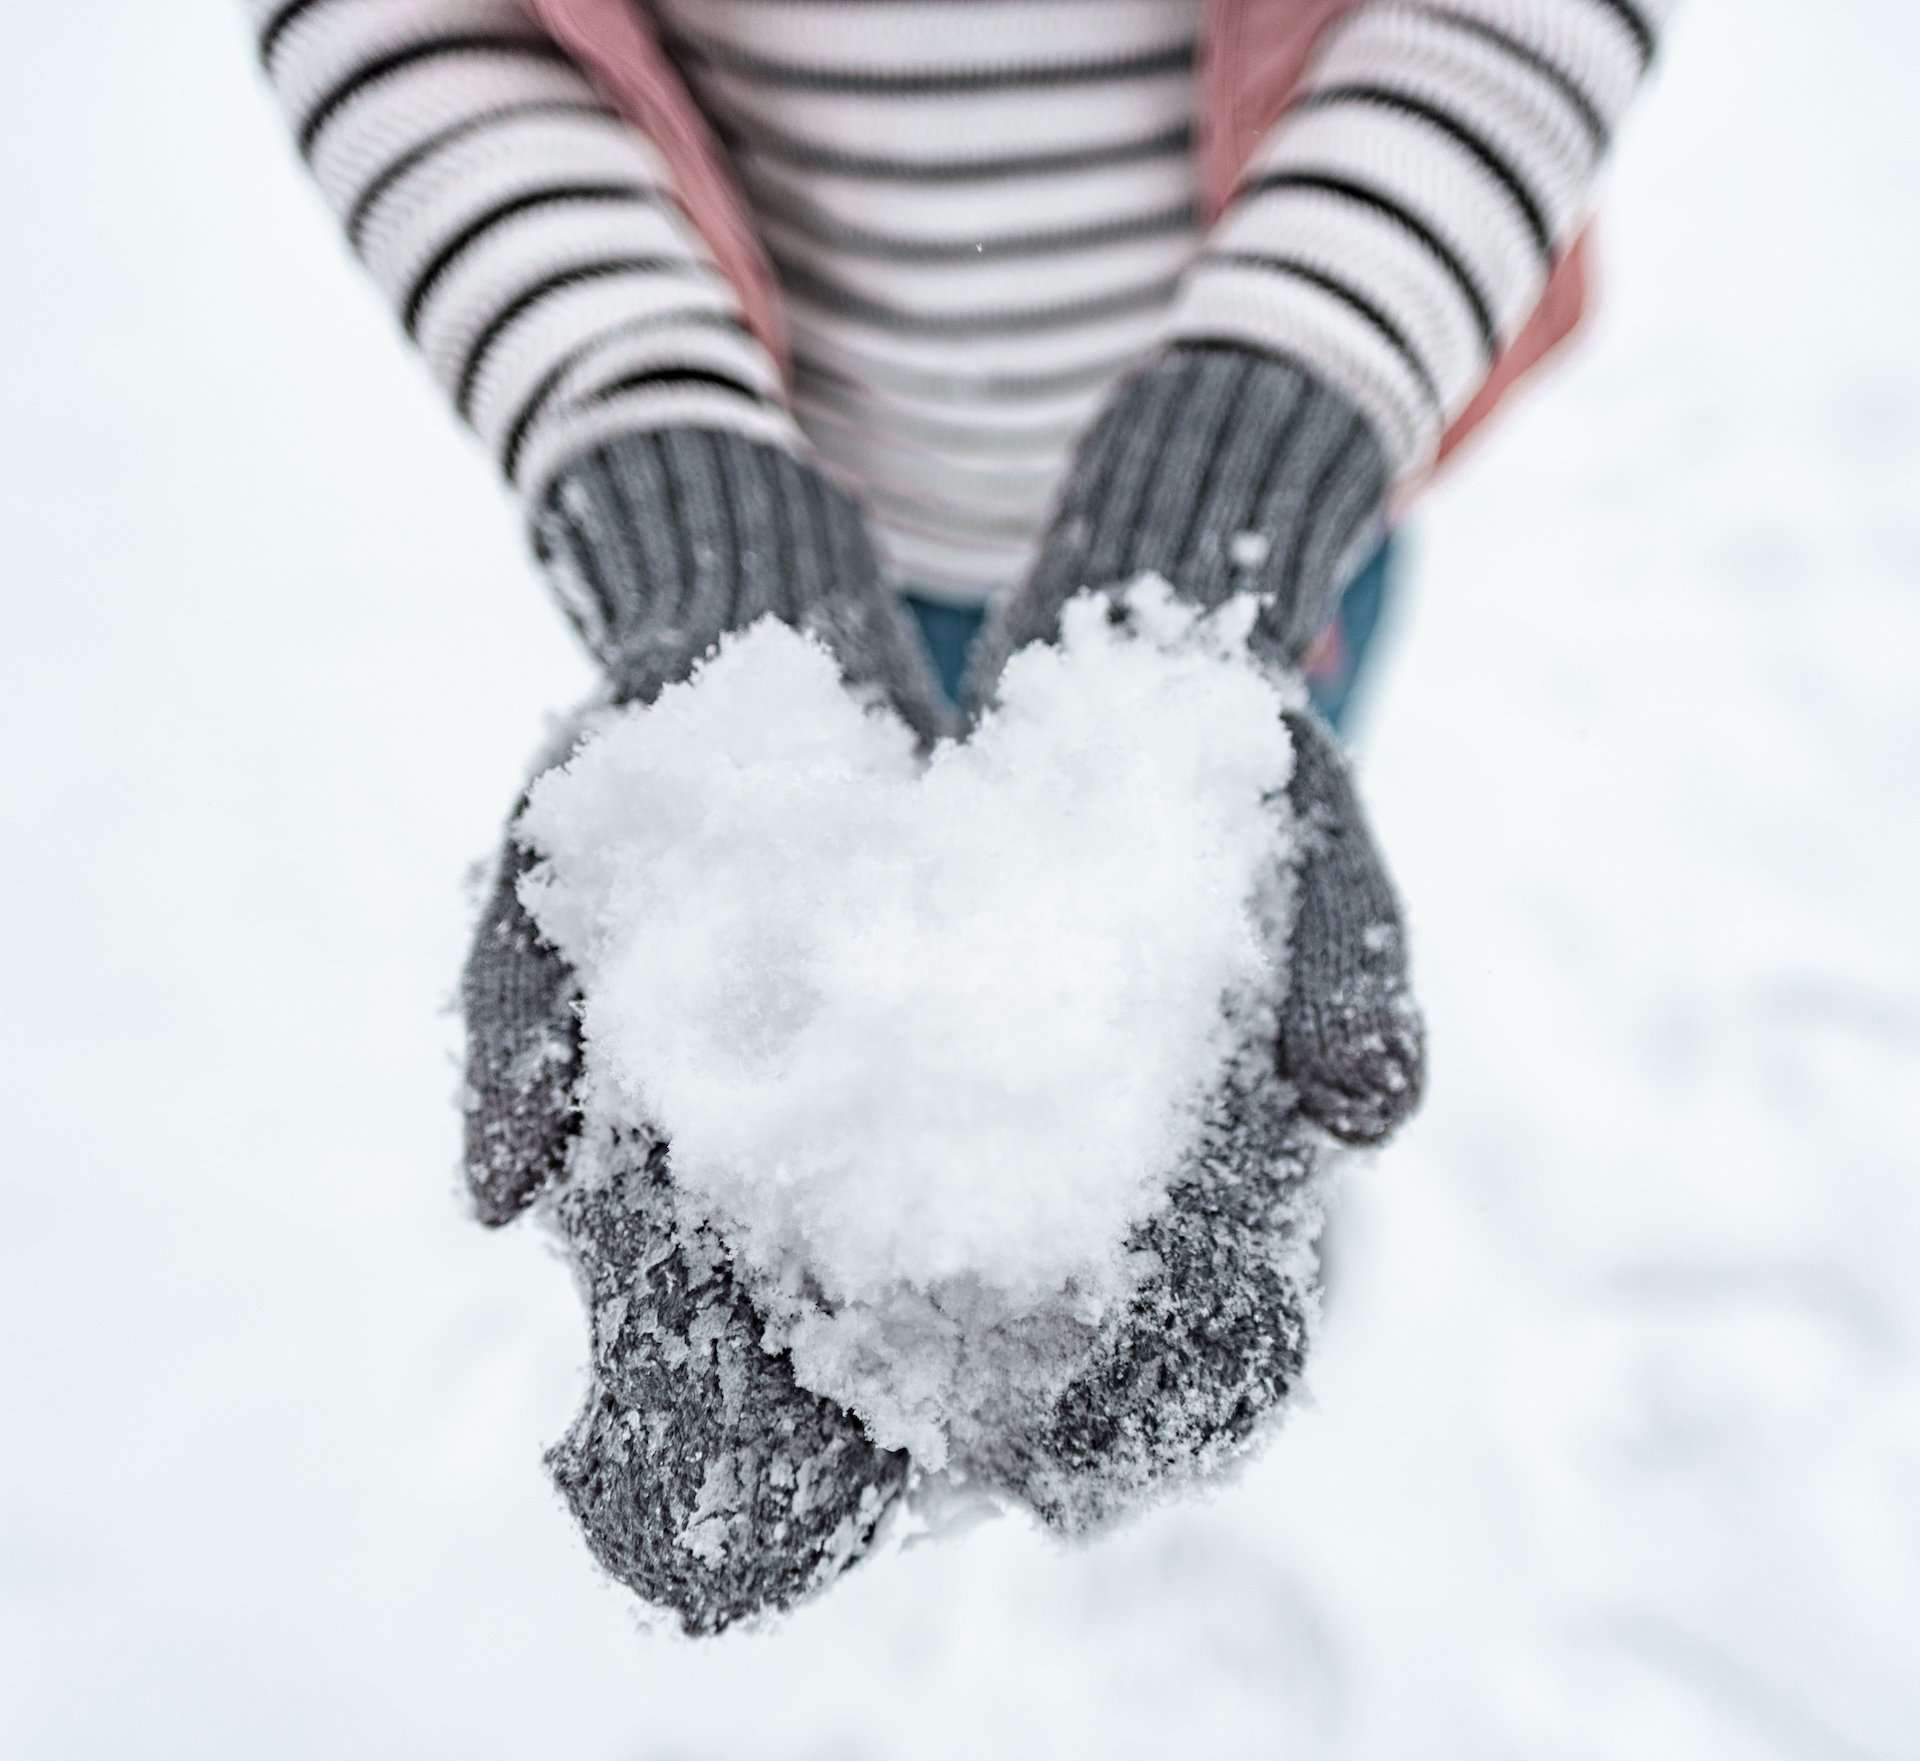 making snow hearts in Woodstock, Vermont